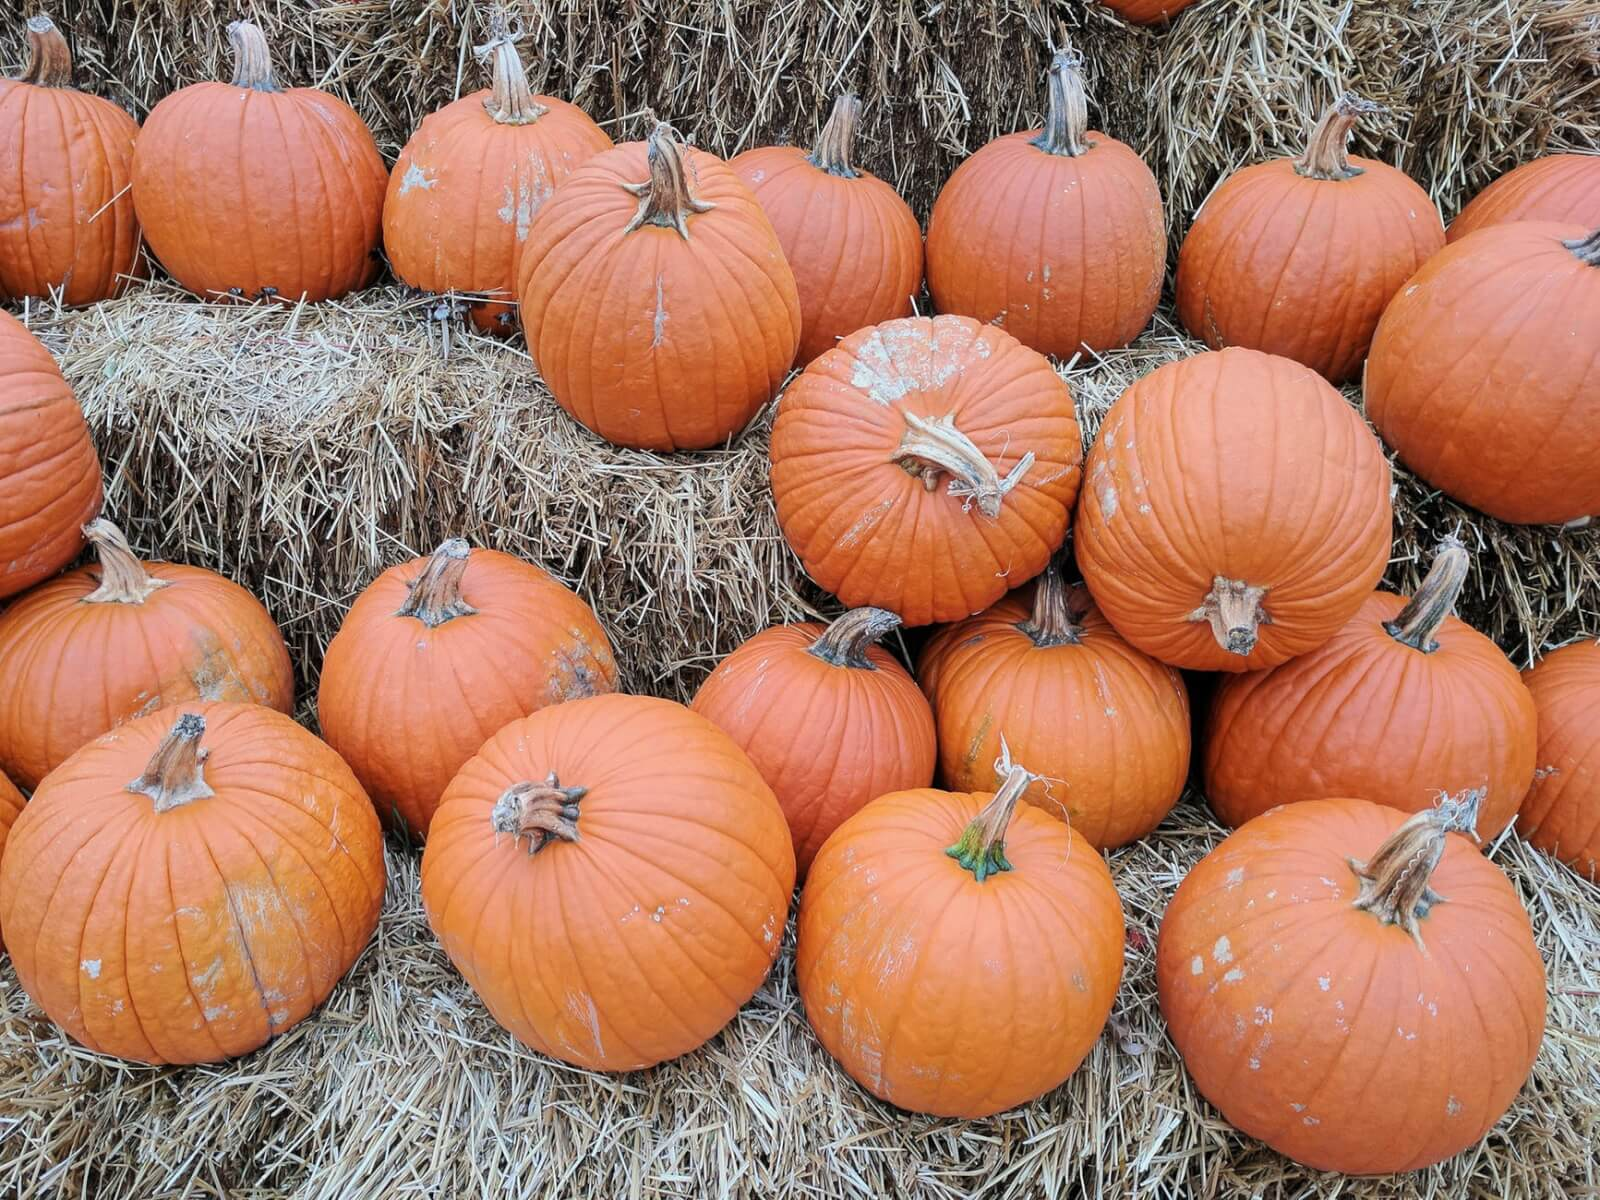 Big, orange pumpkins sit atop hay bales at a pumpkin patch.